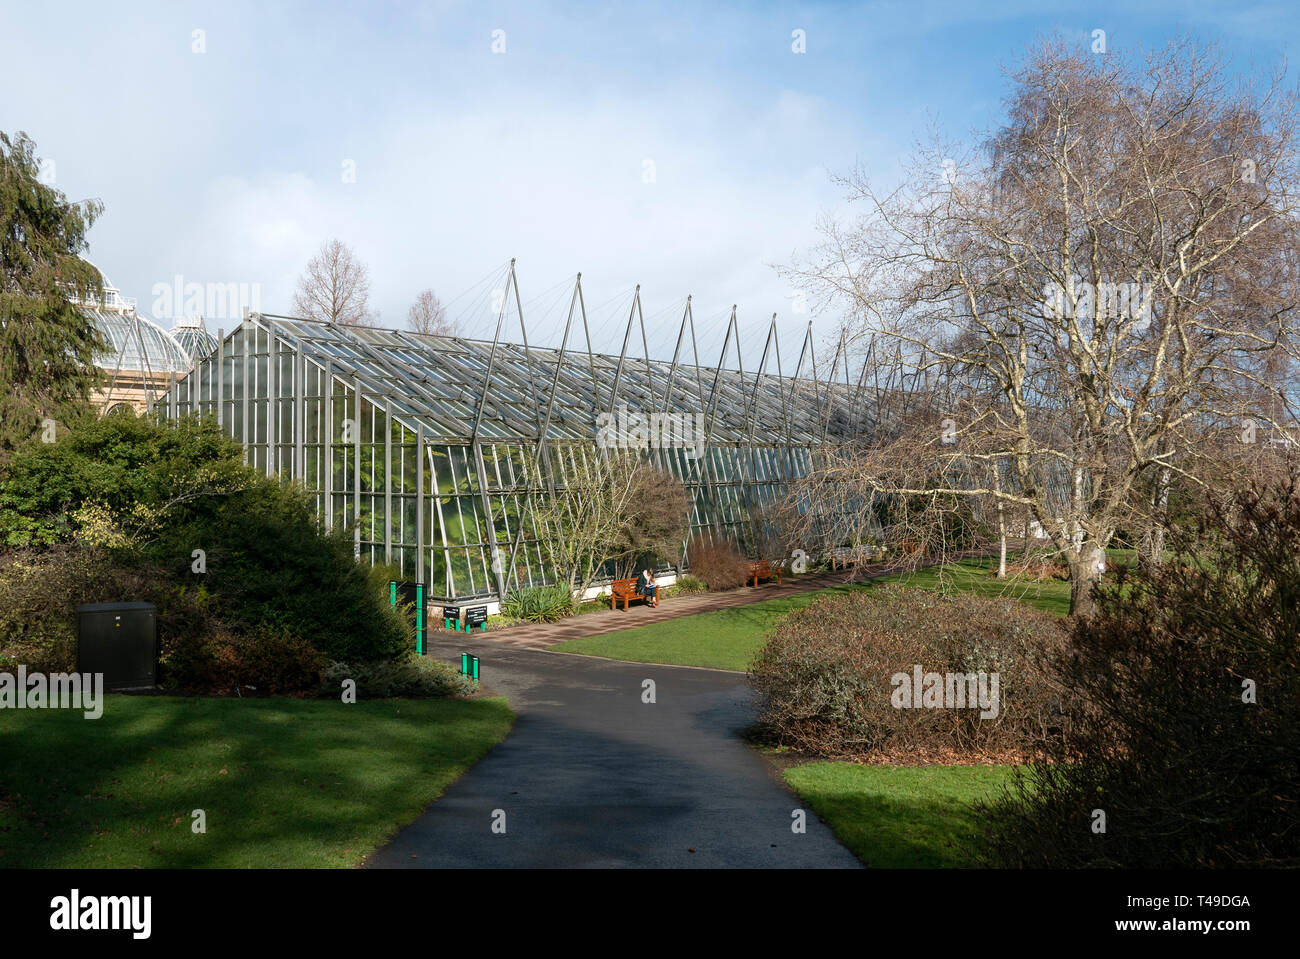 Royal Botanic Garden in Edinburgh, Scotland, United Kingdom - Stock Image